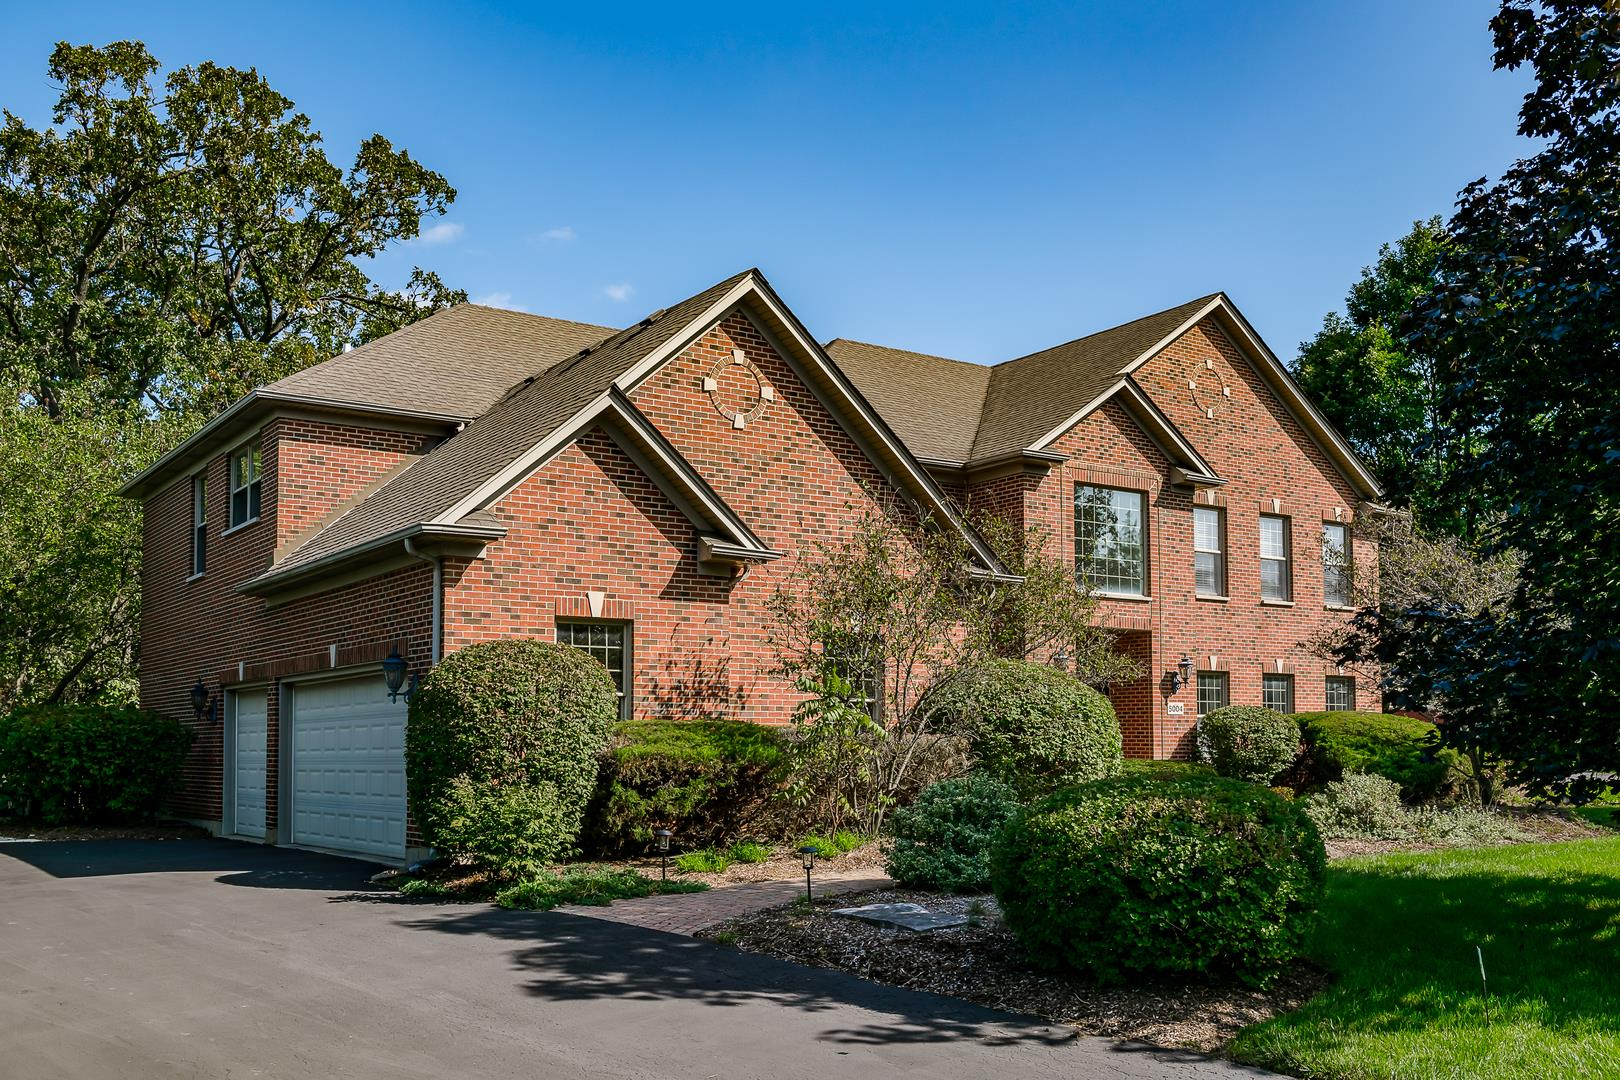 5004 Sunset Court, Palatine, IL 60067 - #: 10957104